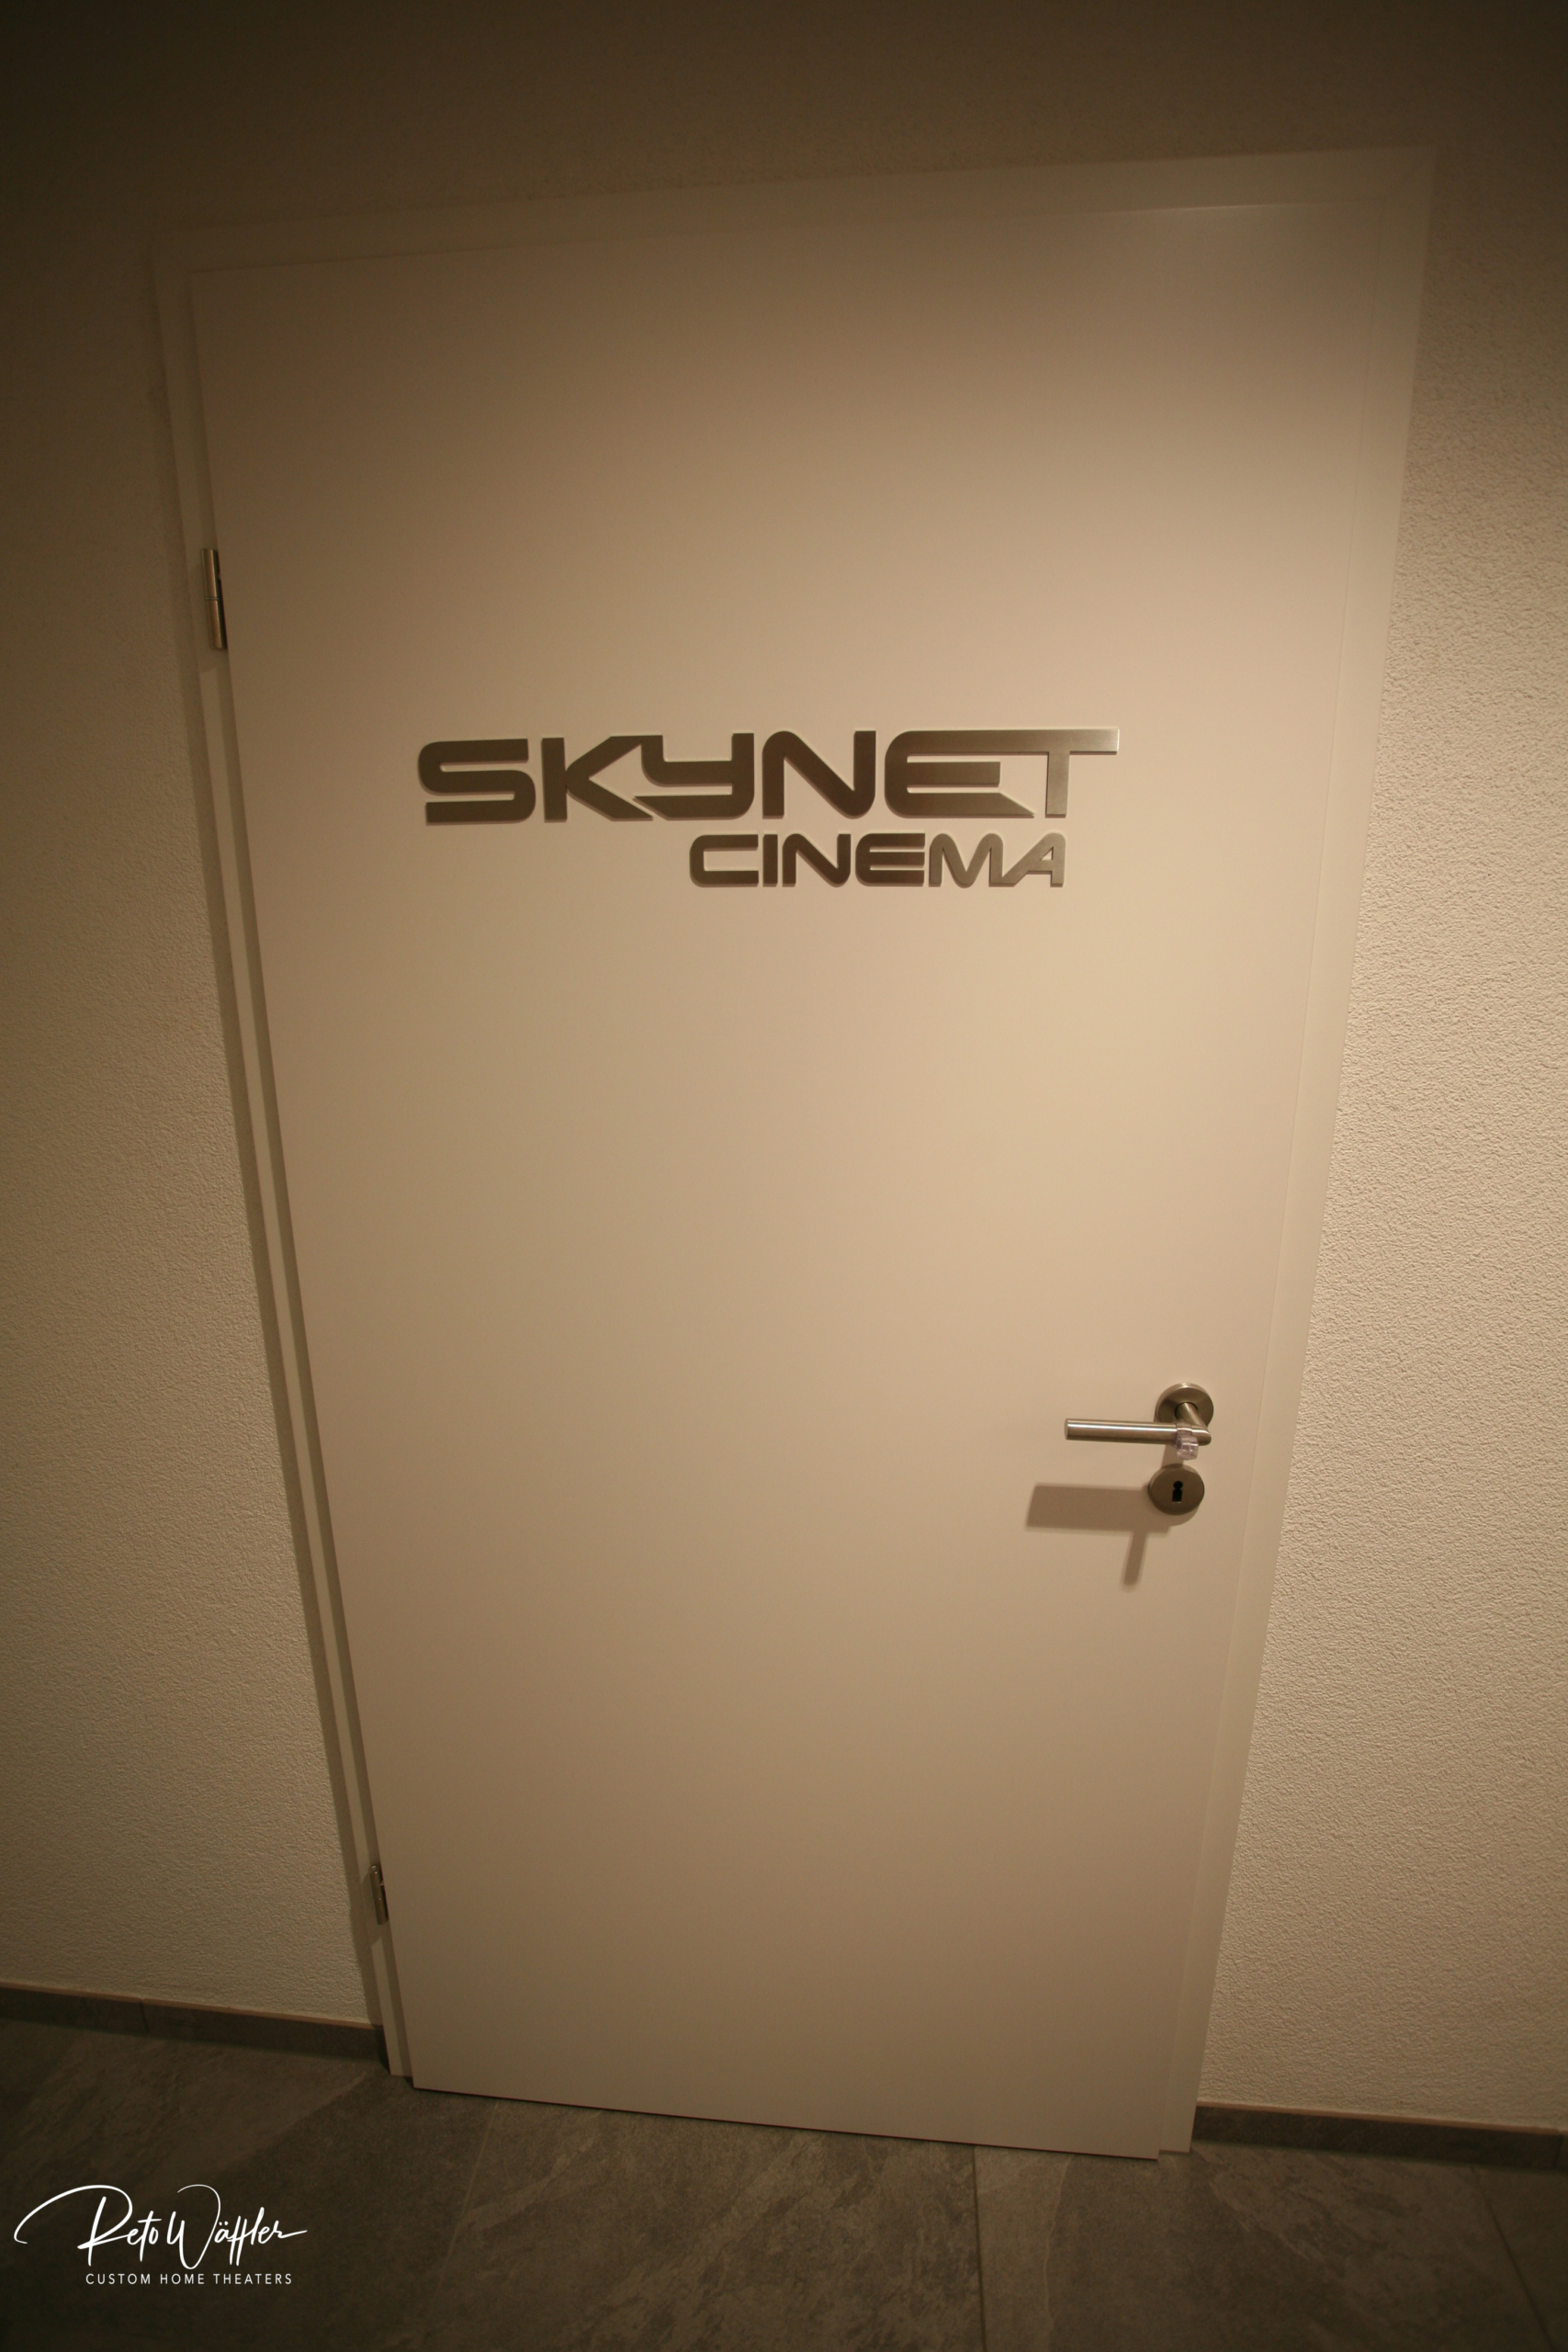 Skynet Cinema, SG